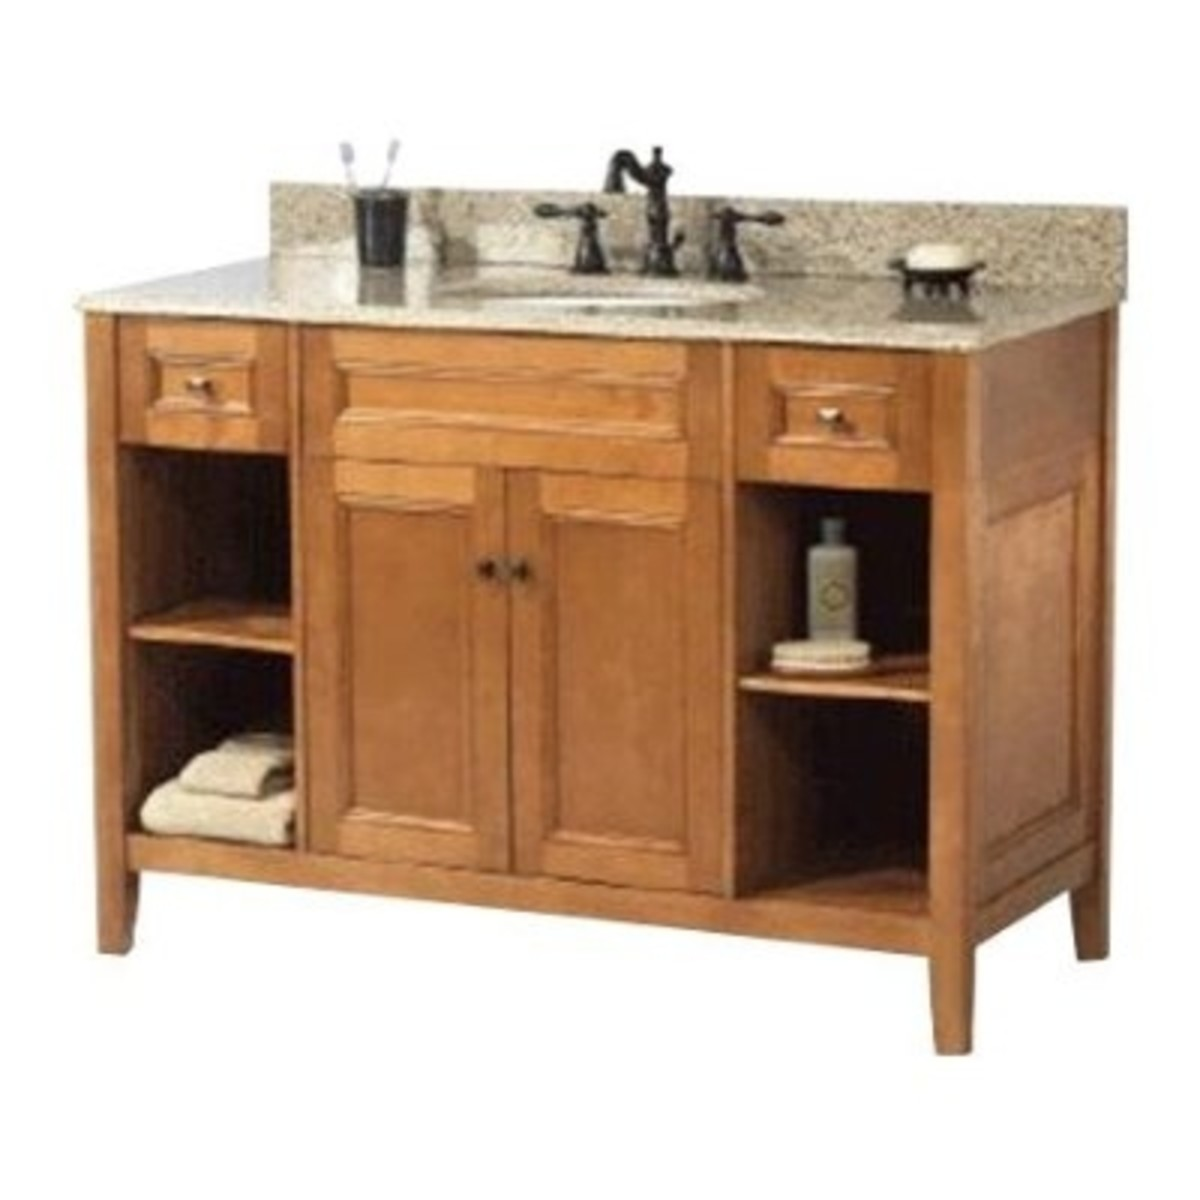 Pegasus 48 inch Exhibit Bathroom Vanity